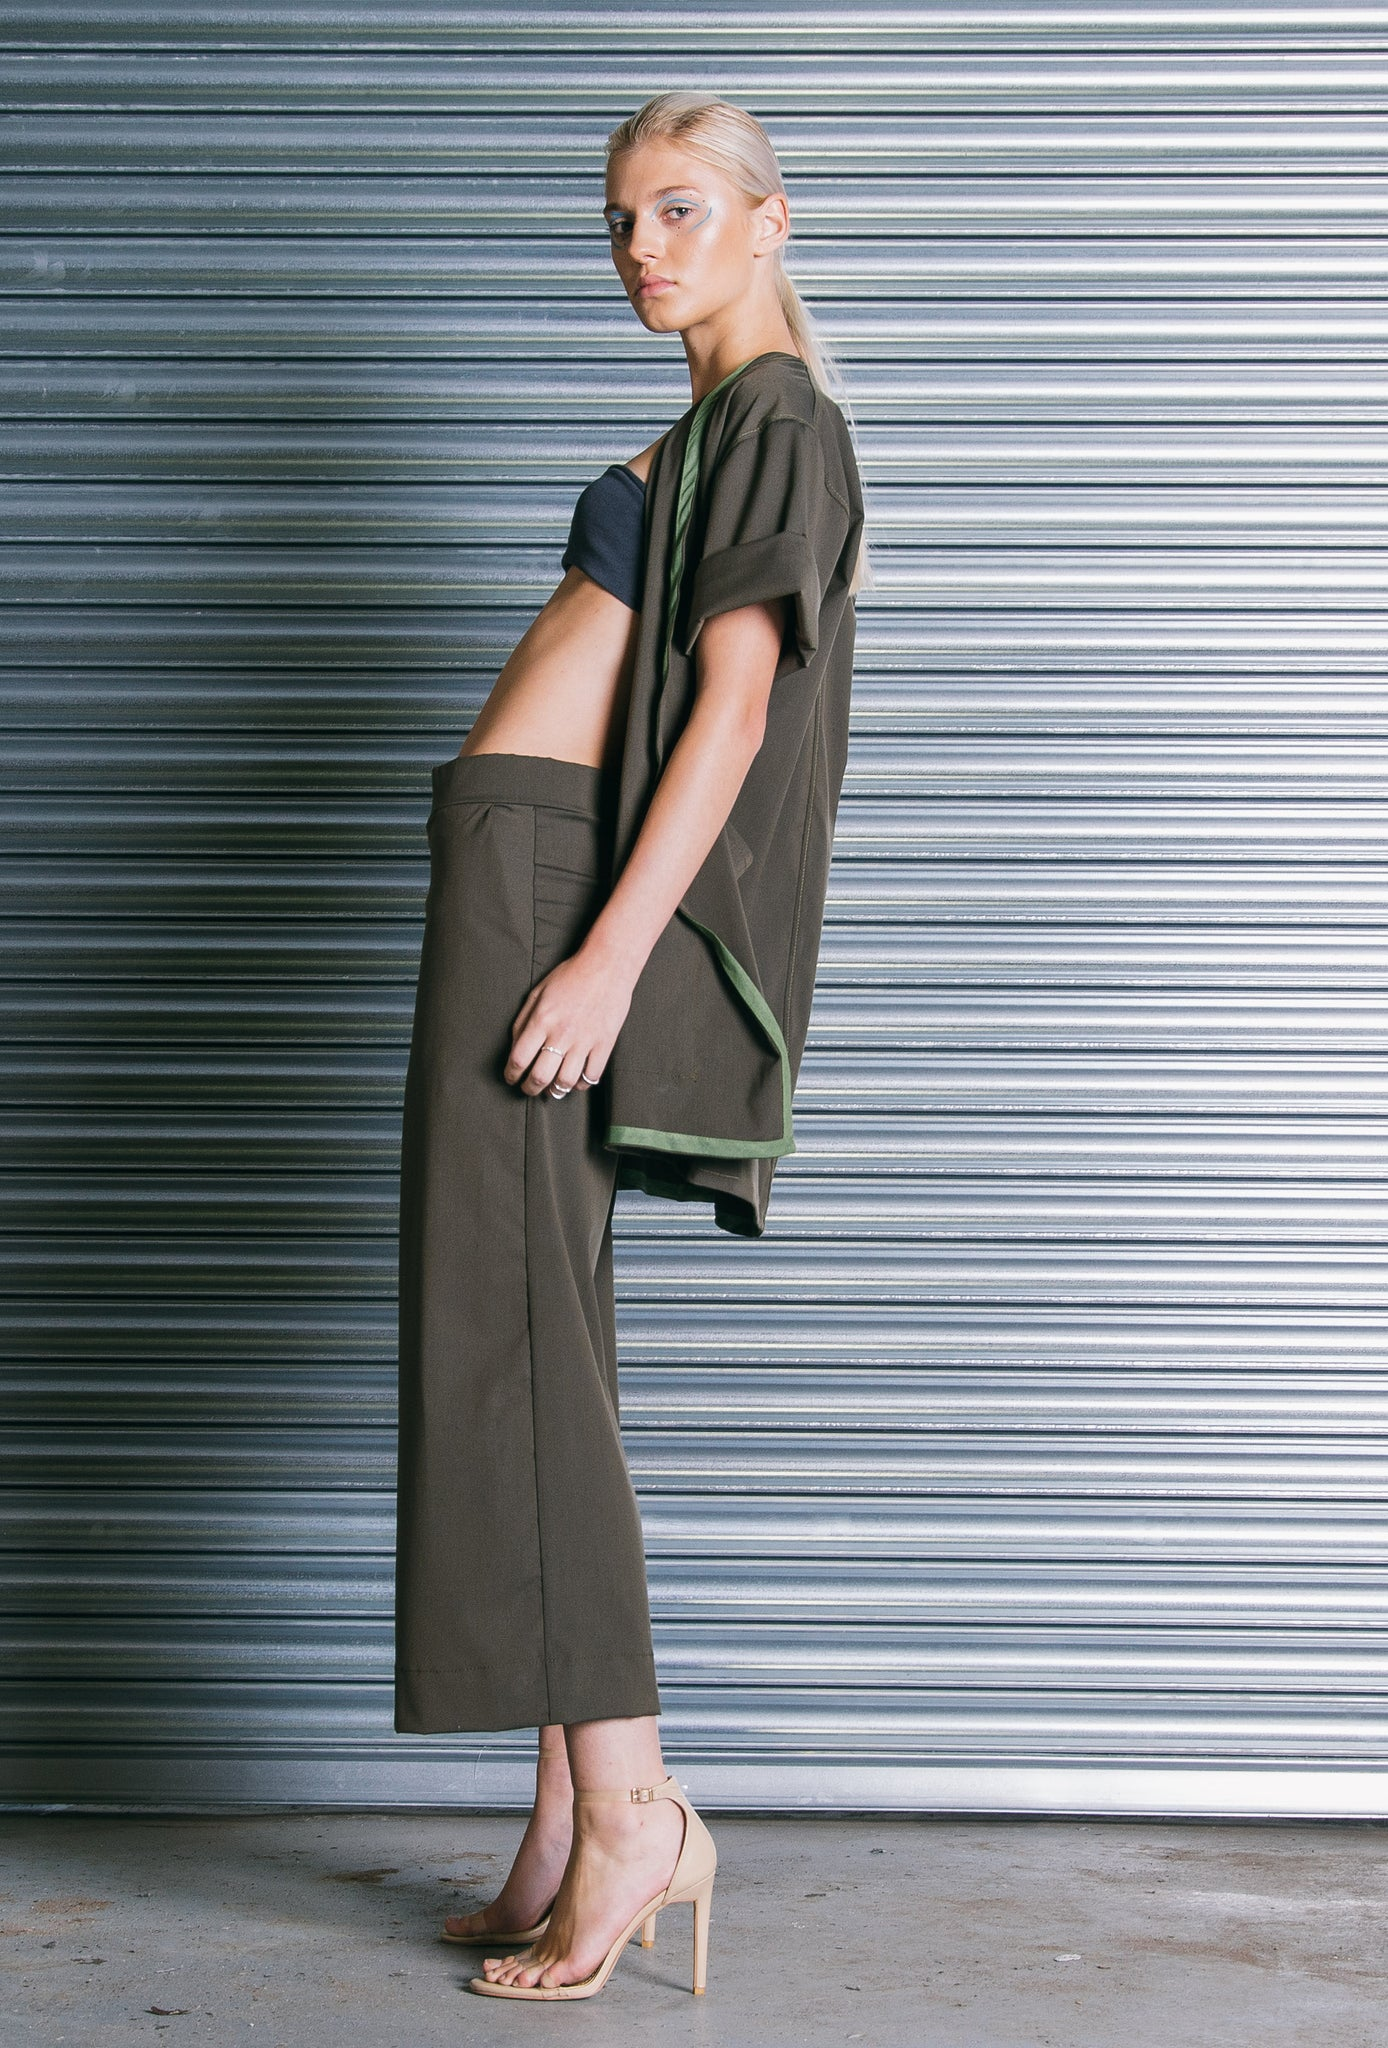 The Culottes in Olive